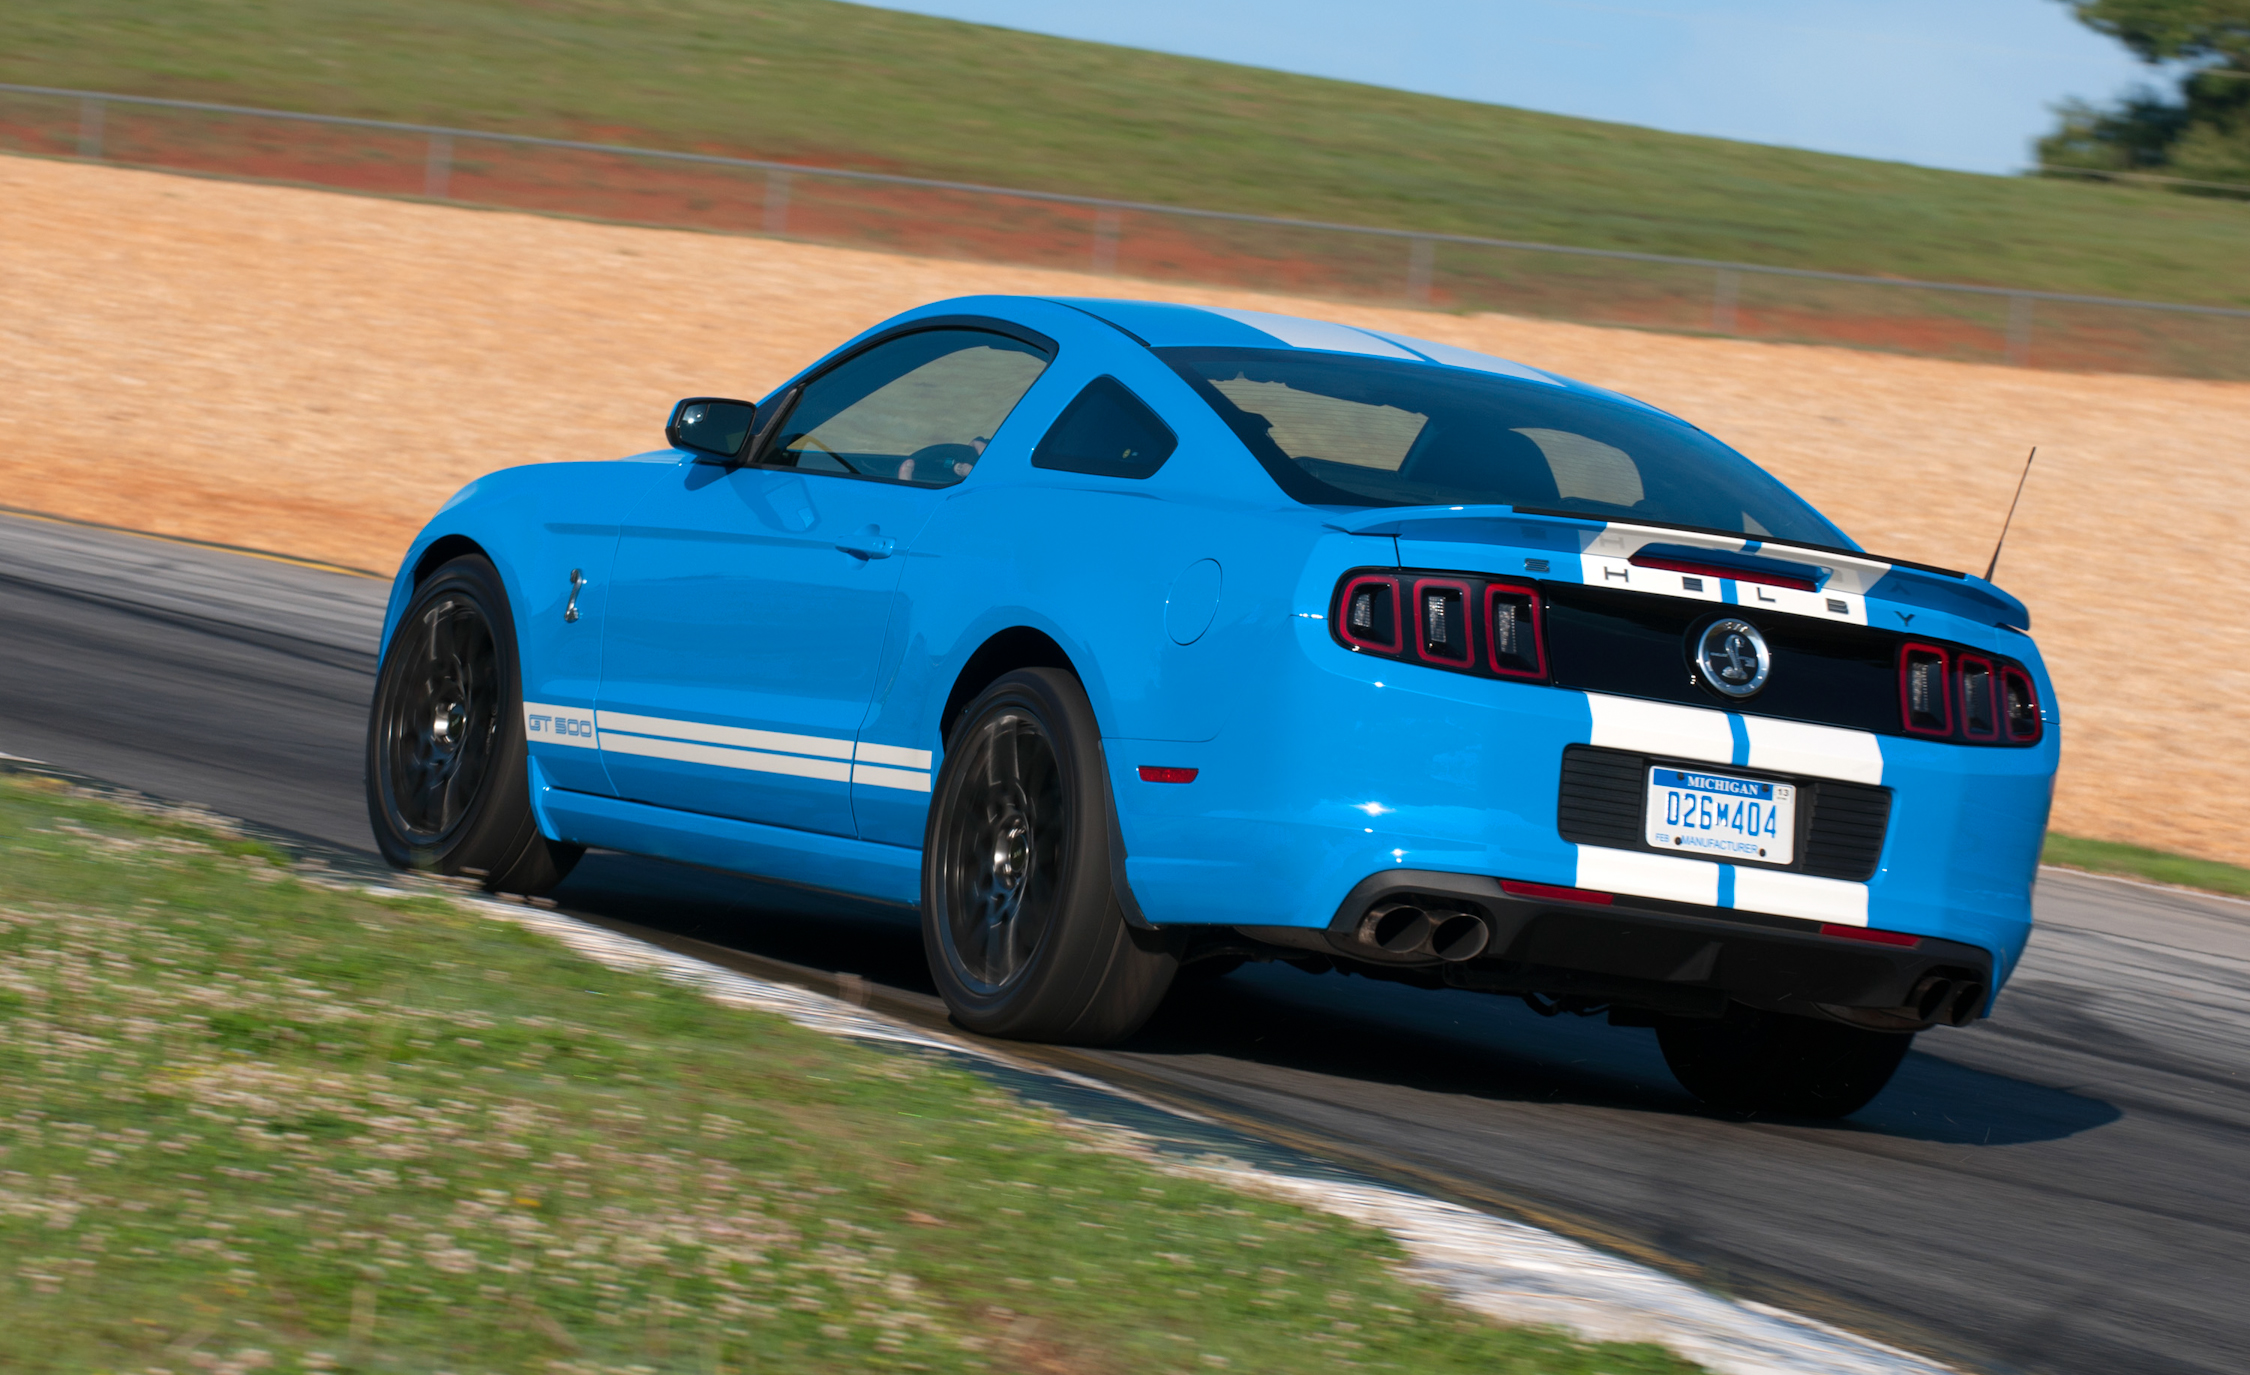 2013 Ford Mustang Shelby GT500 Blue Test Drive Side And Rear View (View 31 of 47)